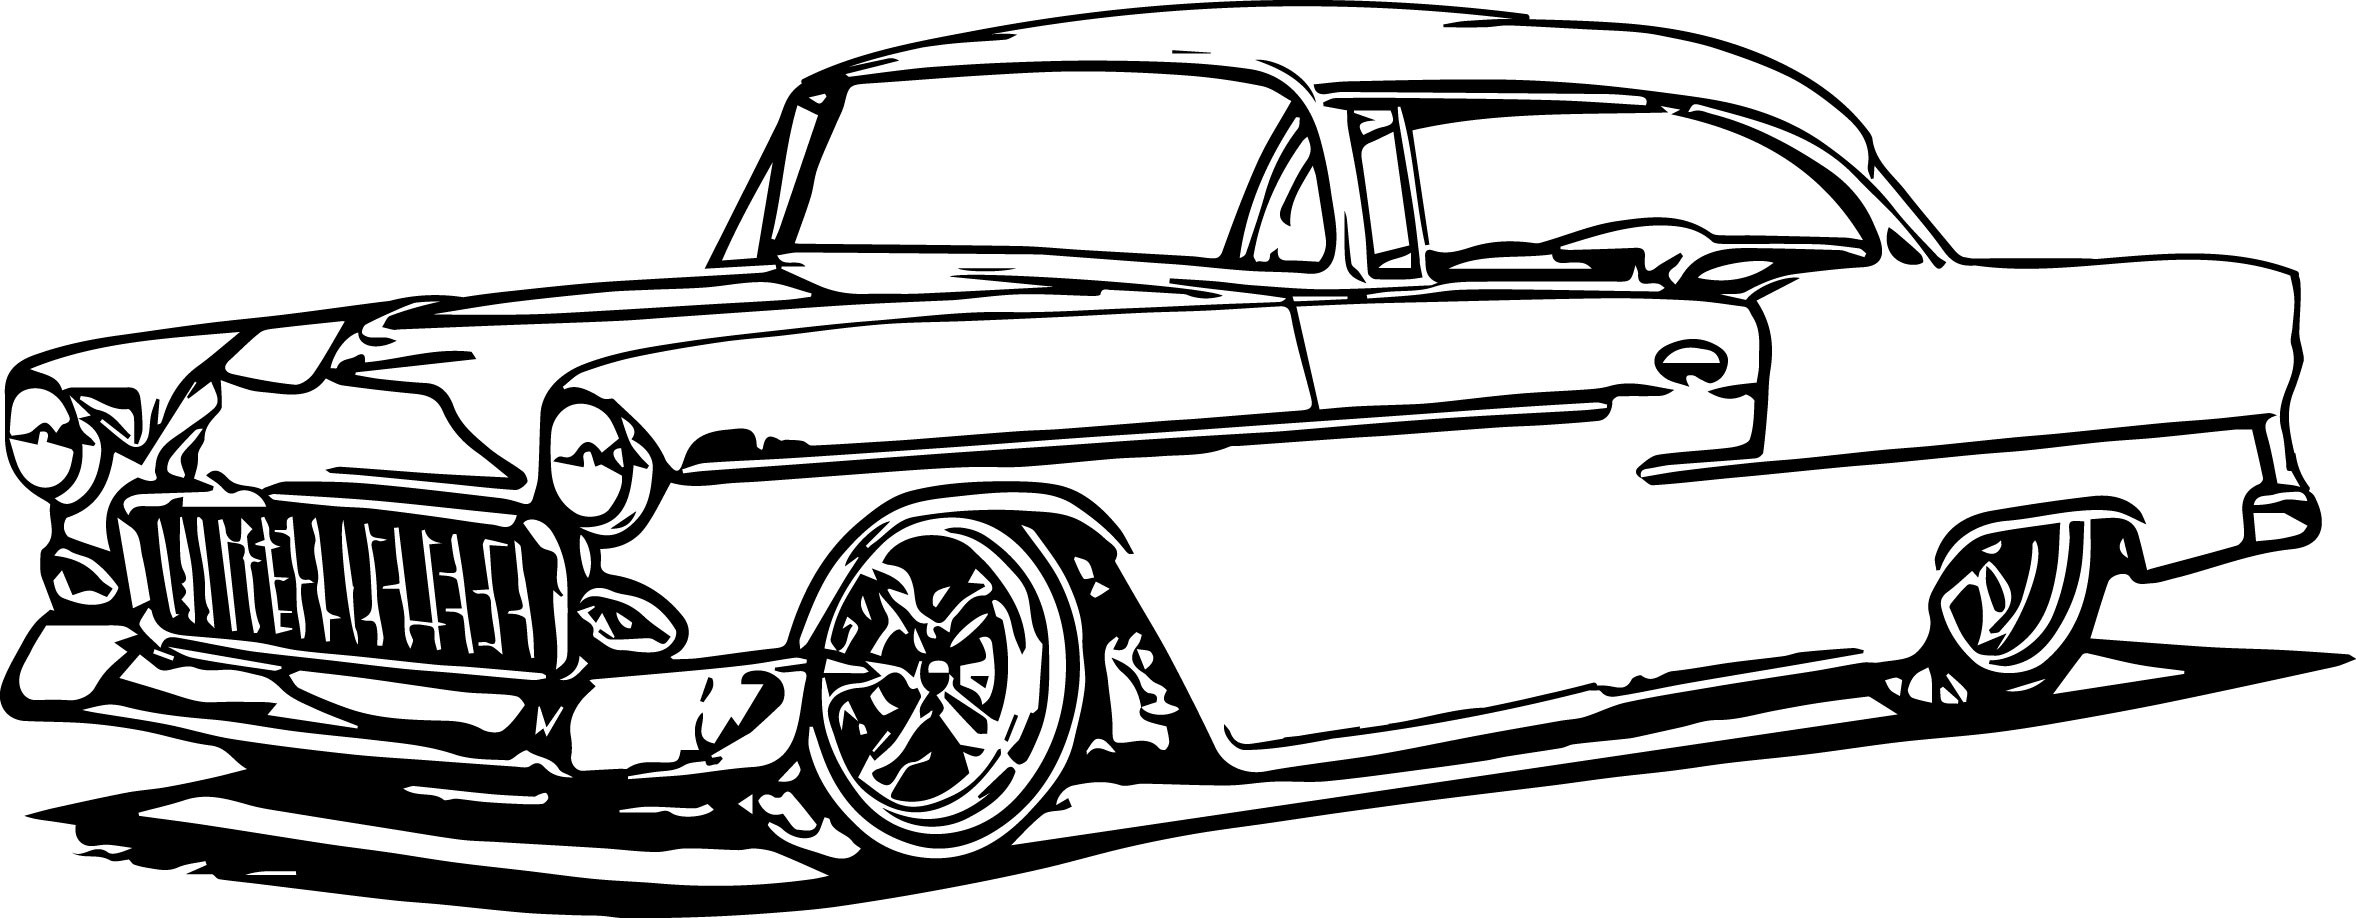 hot rod coloring sheets hot rod coloring page coloring home sheets rod hot coloring